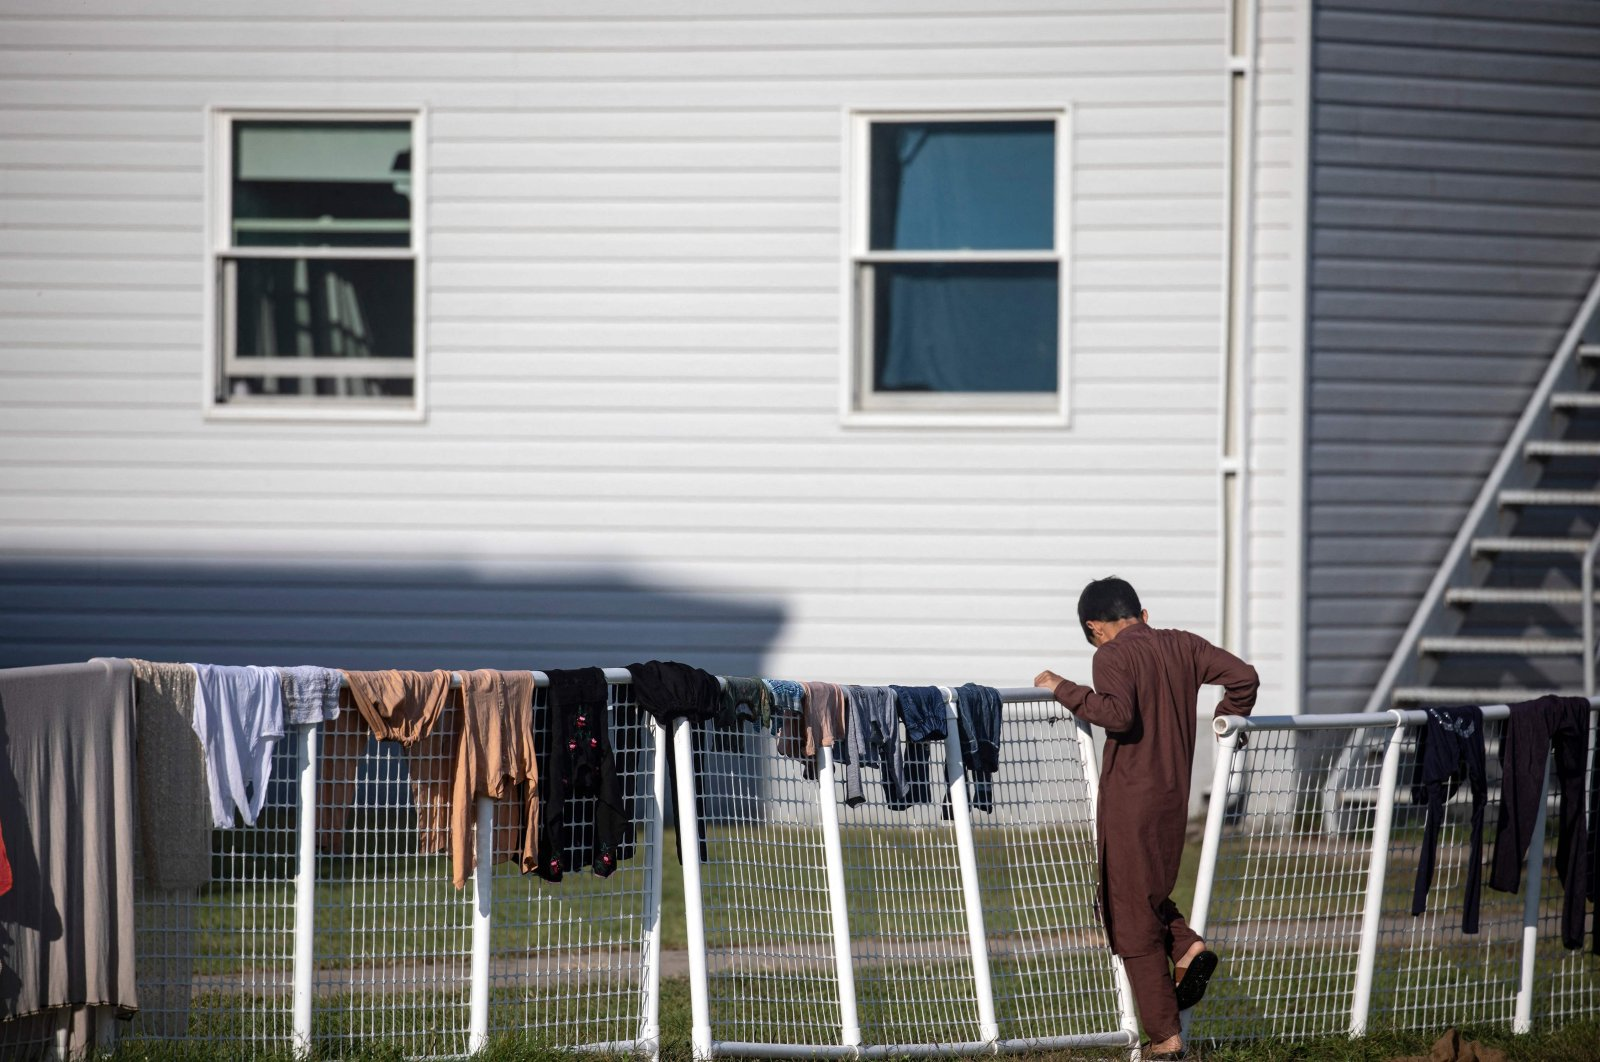 An Afghan refugee stands outside temporary housing at Ft. McCoy U.S. Army base, Sept. 30, 2021, Wisconsin, U.S. (AFP Photo)